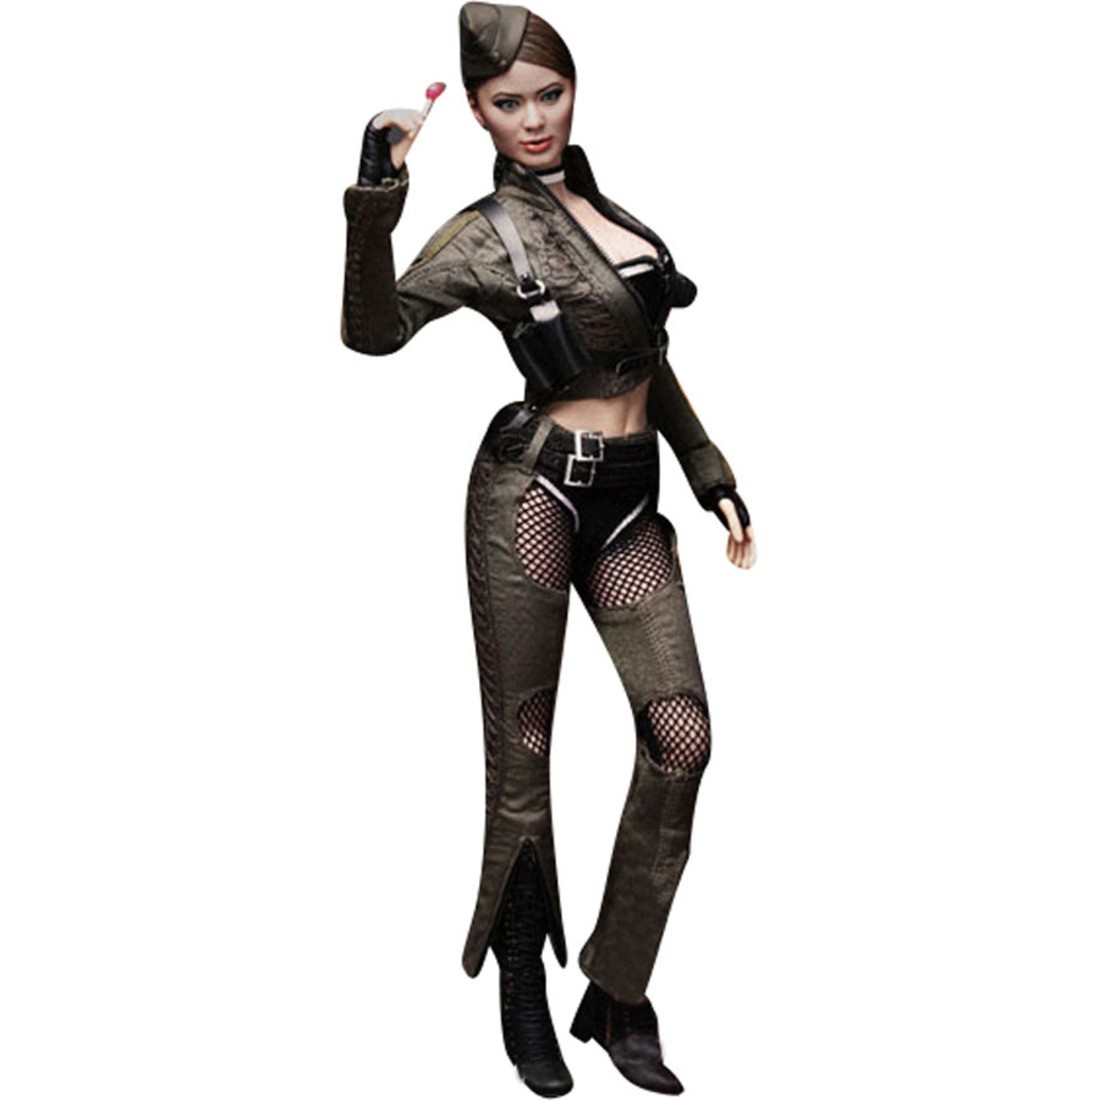 hot toys amber sucker punch 1/6 scale collectible figure (green)